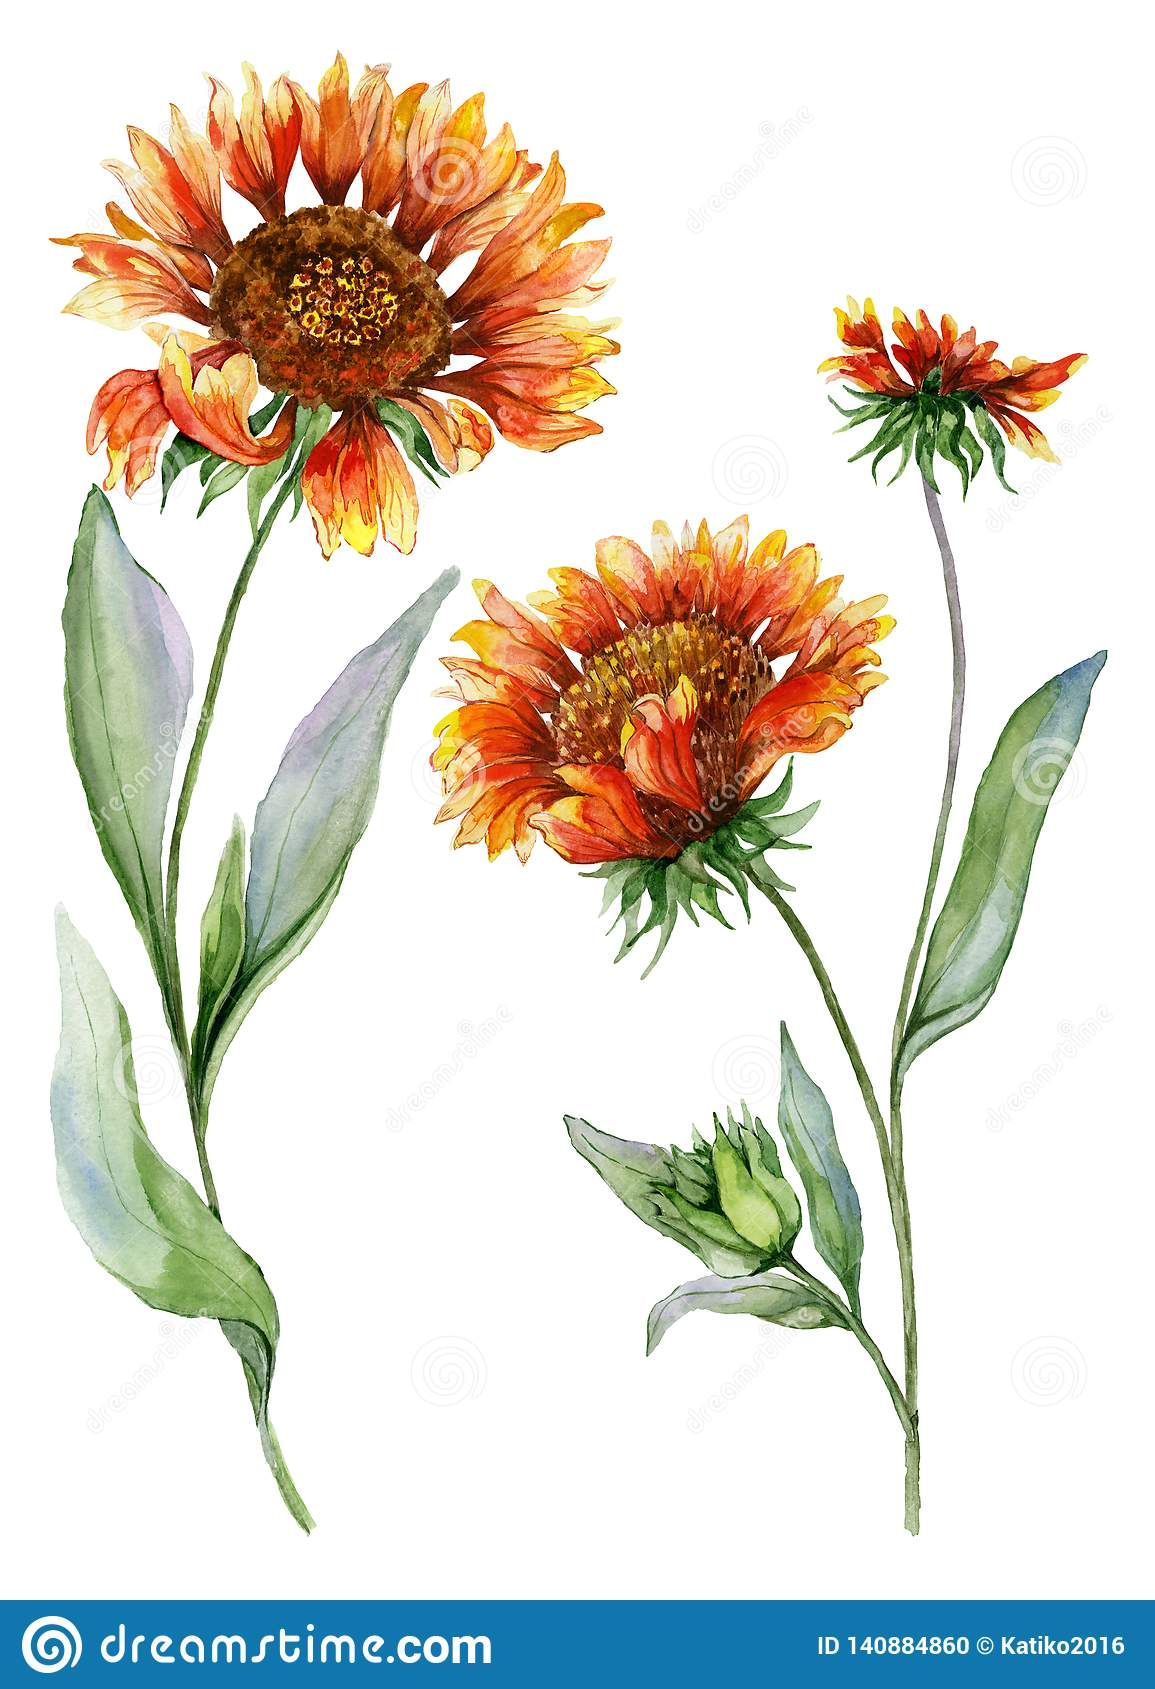 Beautiful Orange Coreopsis Flower On A Stem With Green Leaves Set Of Two Flowers Isolated On White Background Watercolor Stock Illustration Illustration Of Orange Flora 140884860